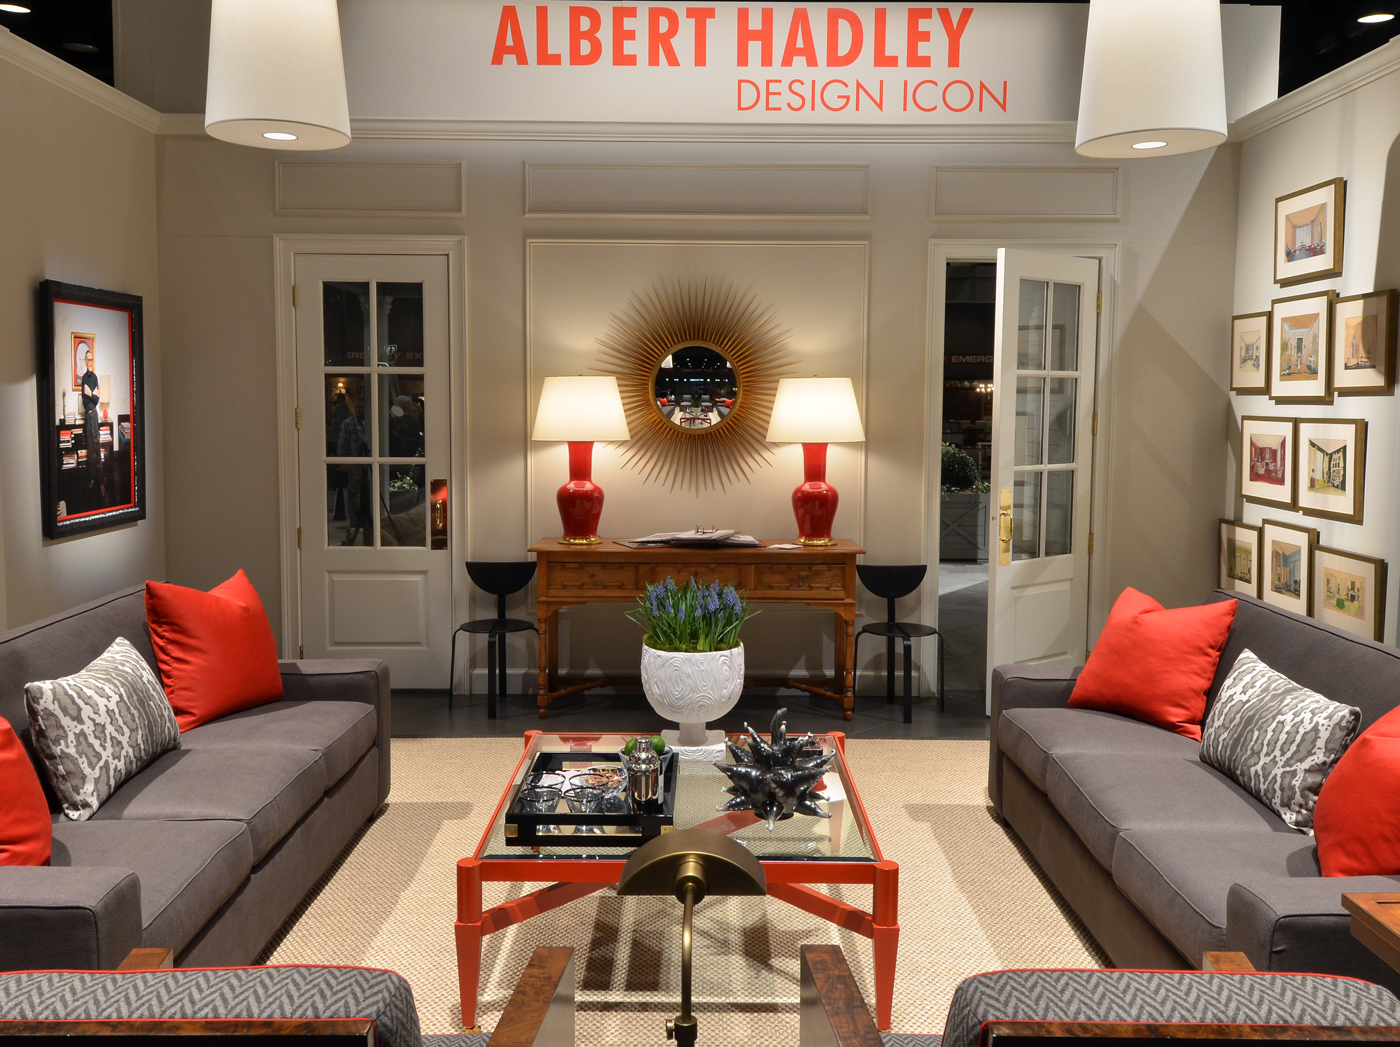 Antiques & Garden Show living room tribute to Albert Hadley with red accents | Savage Interior Design